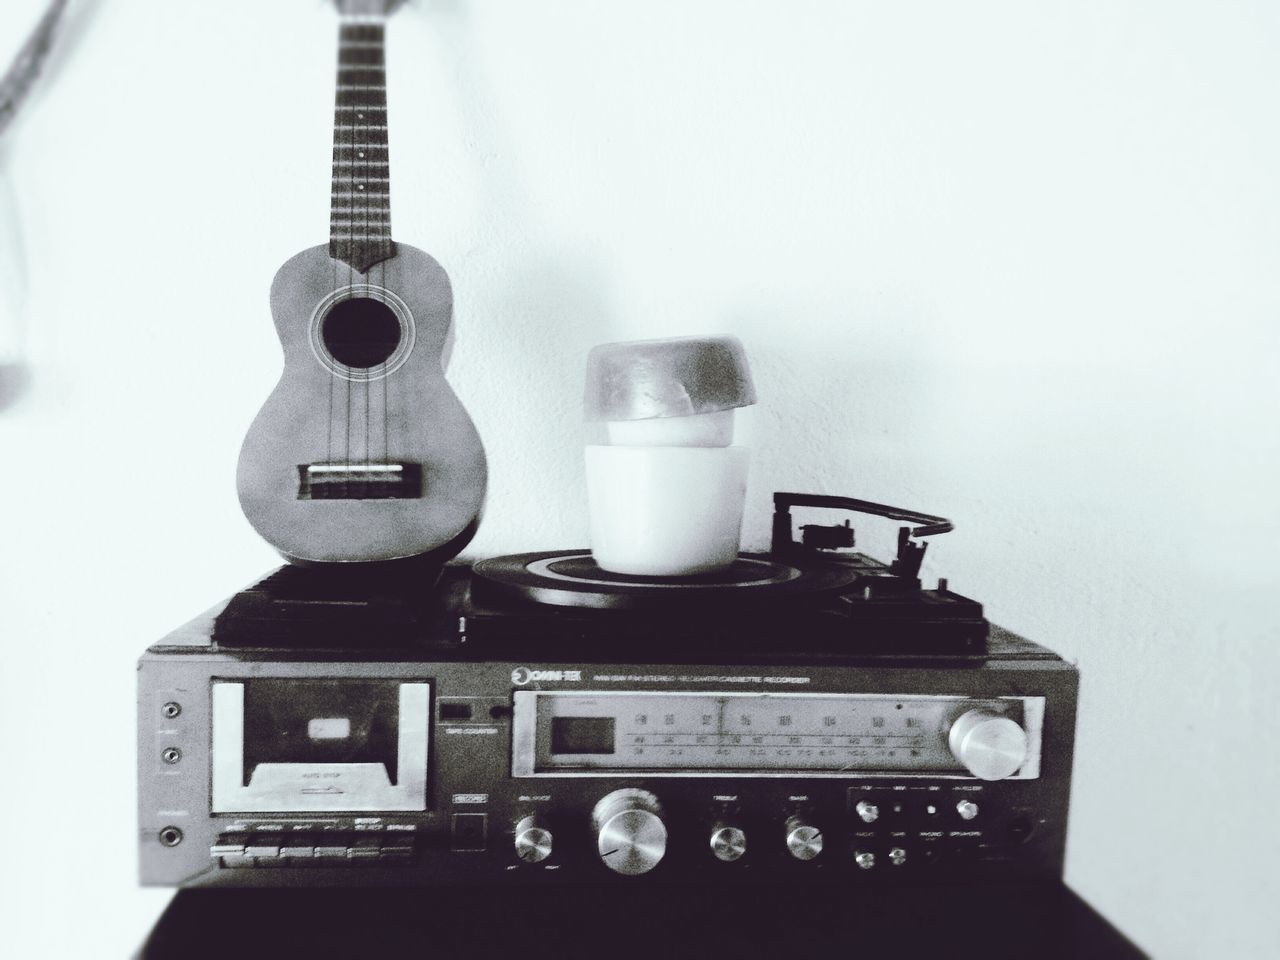 music, retro styled, musical instrument, old-fashioned, arts culture and entertainment, musical equipment, old, still life, guitar, indoors, single object, technology, no people, antique, close-up, white background, musical instrument string, fretboard, record player needle, day